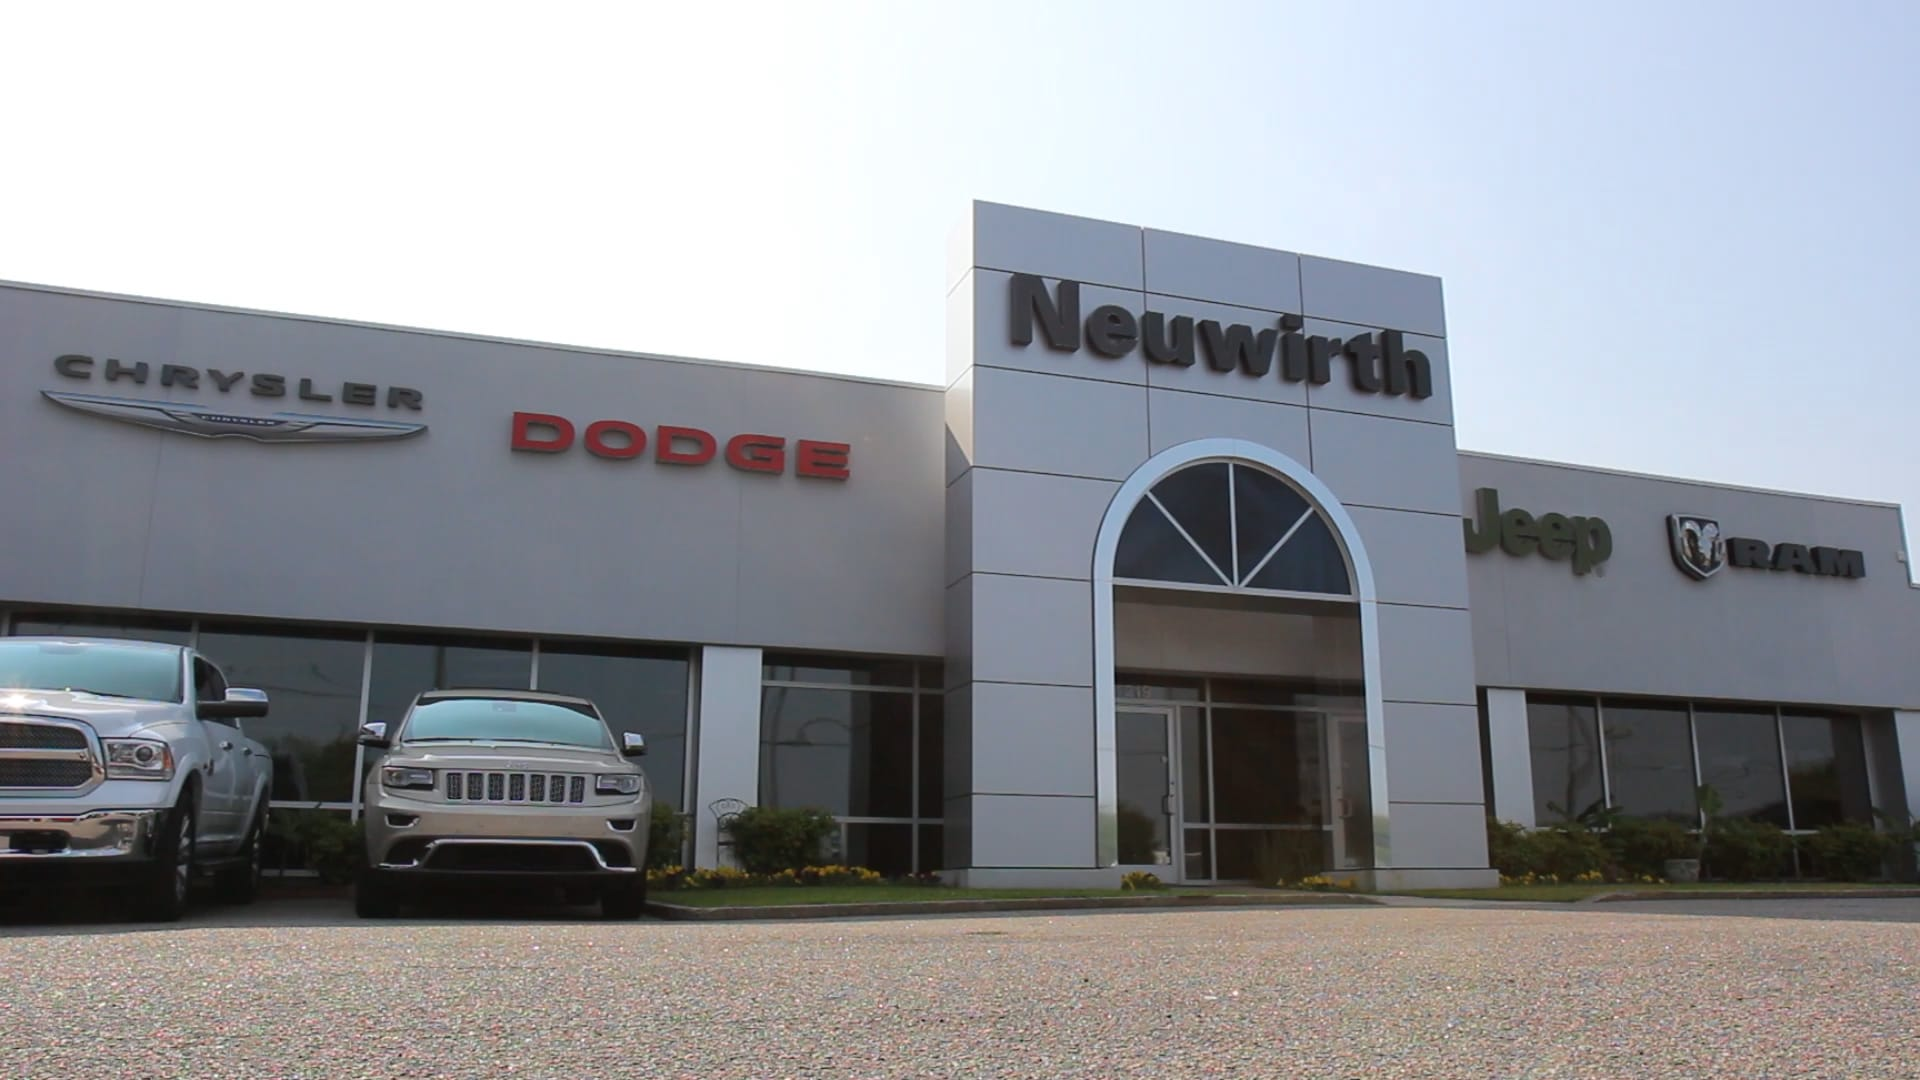 About neuwirth motors wilmington nc nc chrysler dodge Neuwirth motors in wilmington nc